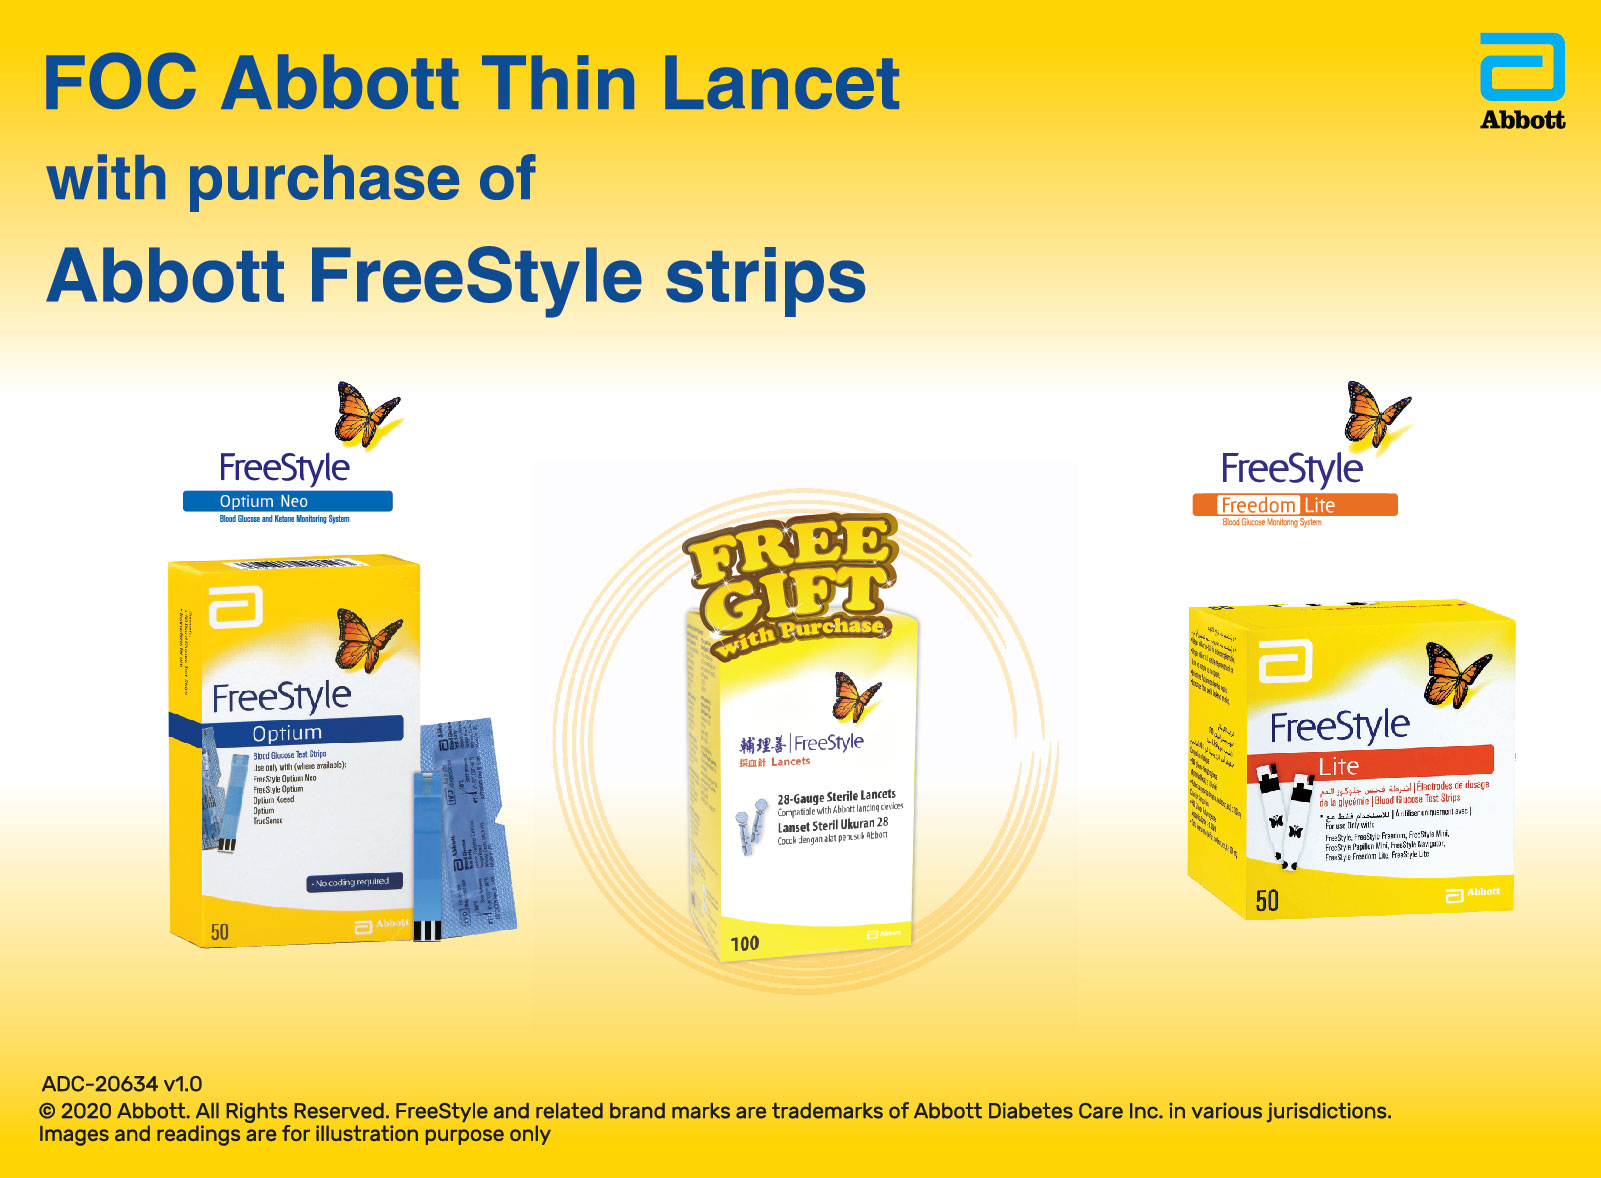 https://www.alpropharmacy.com/oneclick/brand/abbott-freestyle/